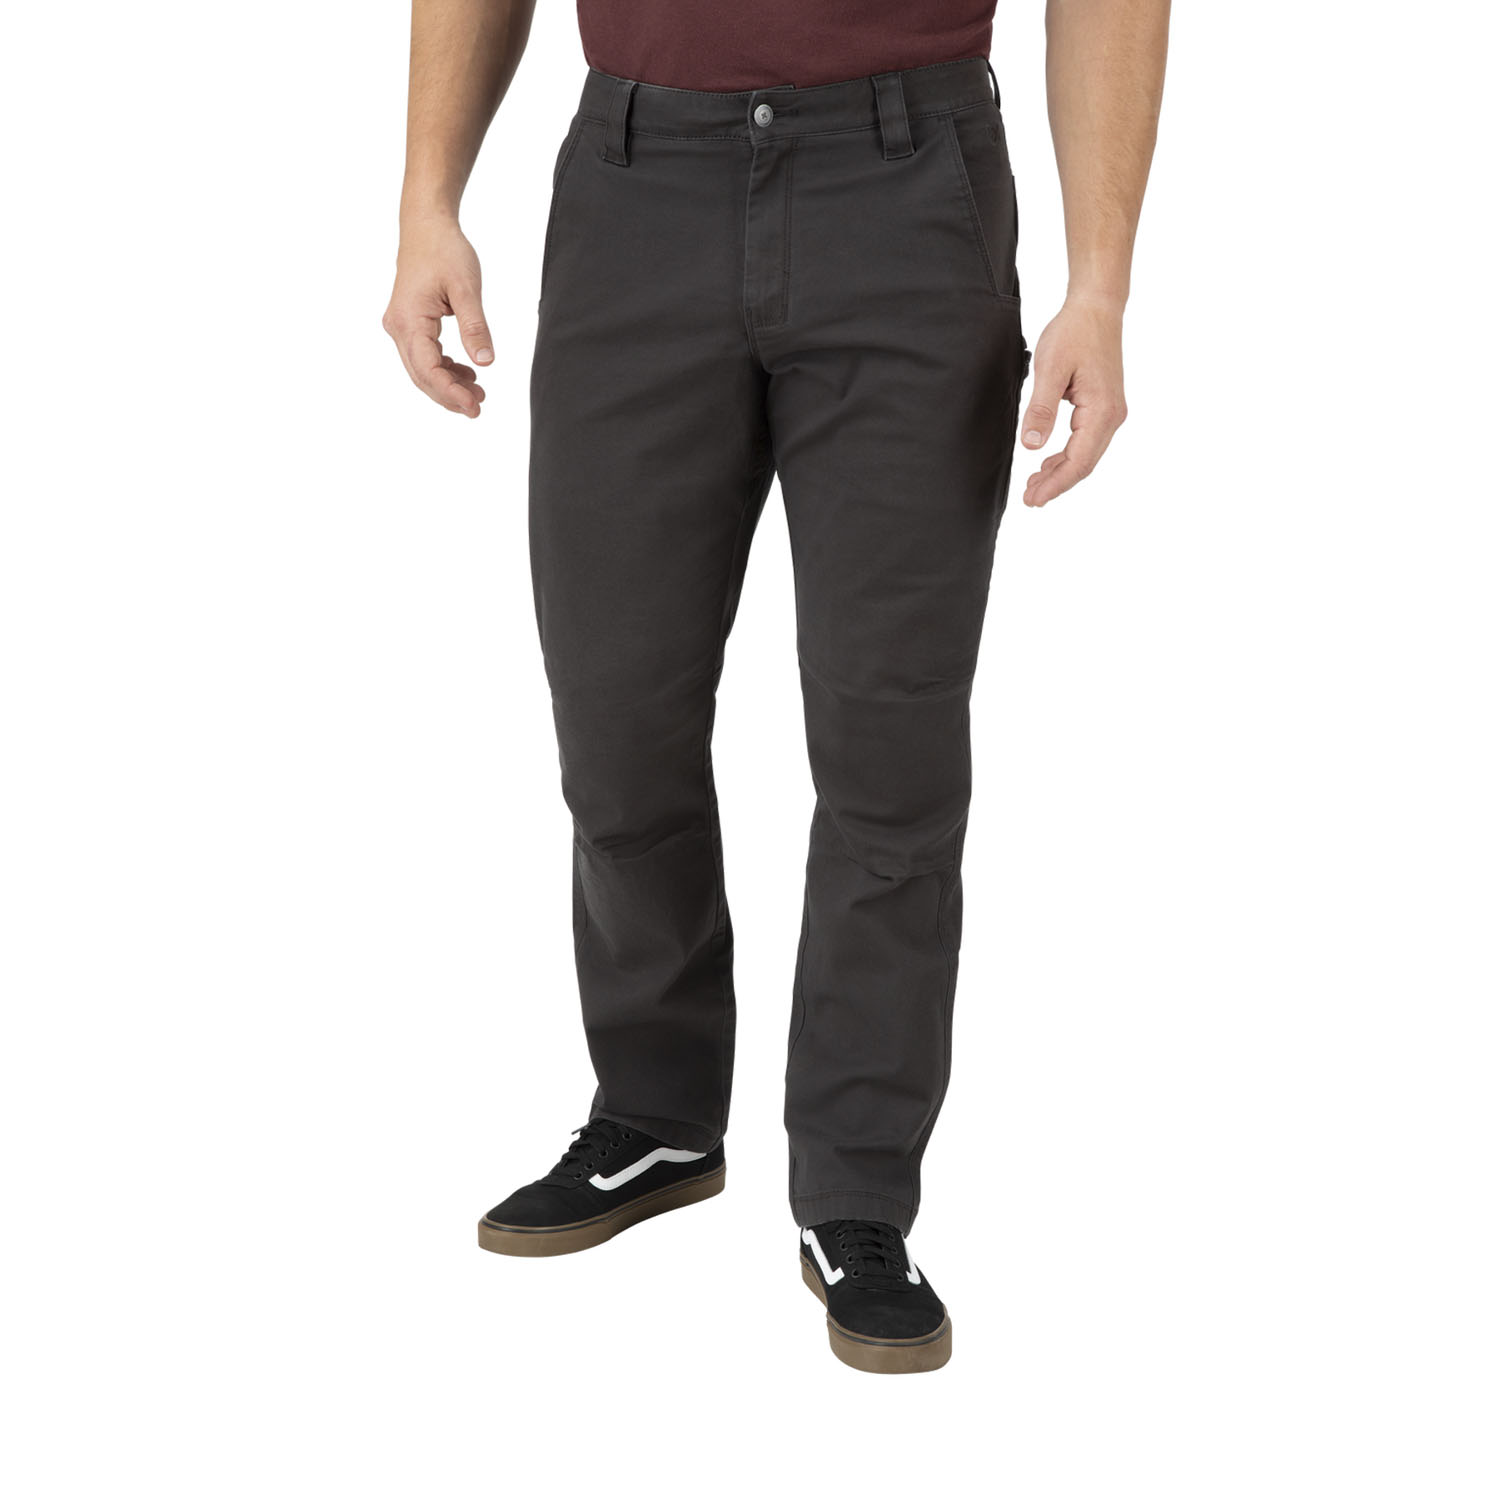 Vertx Men's Delta Stretch 2.1 Pants